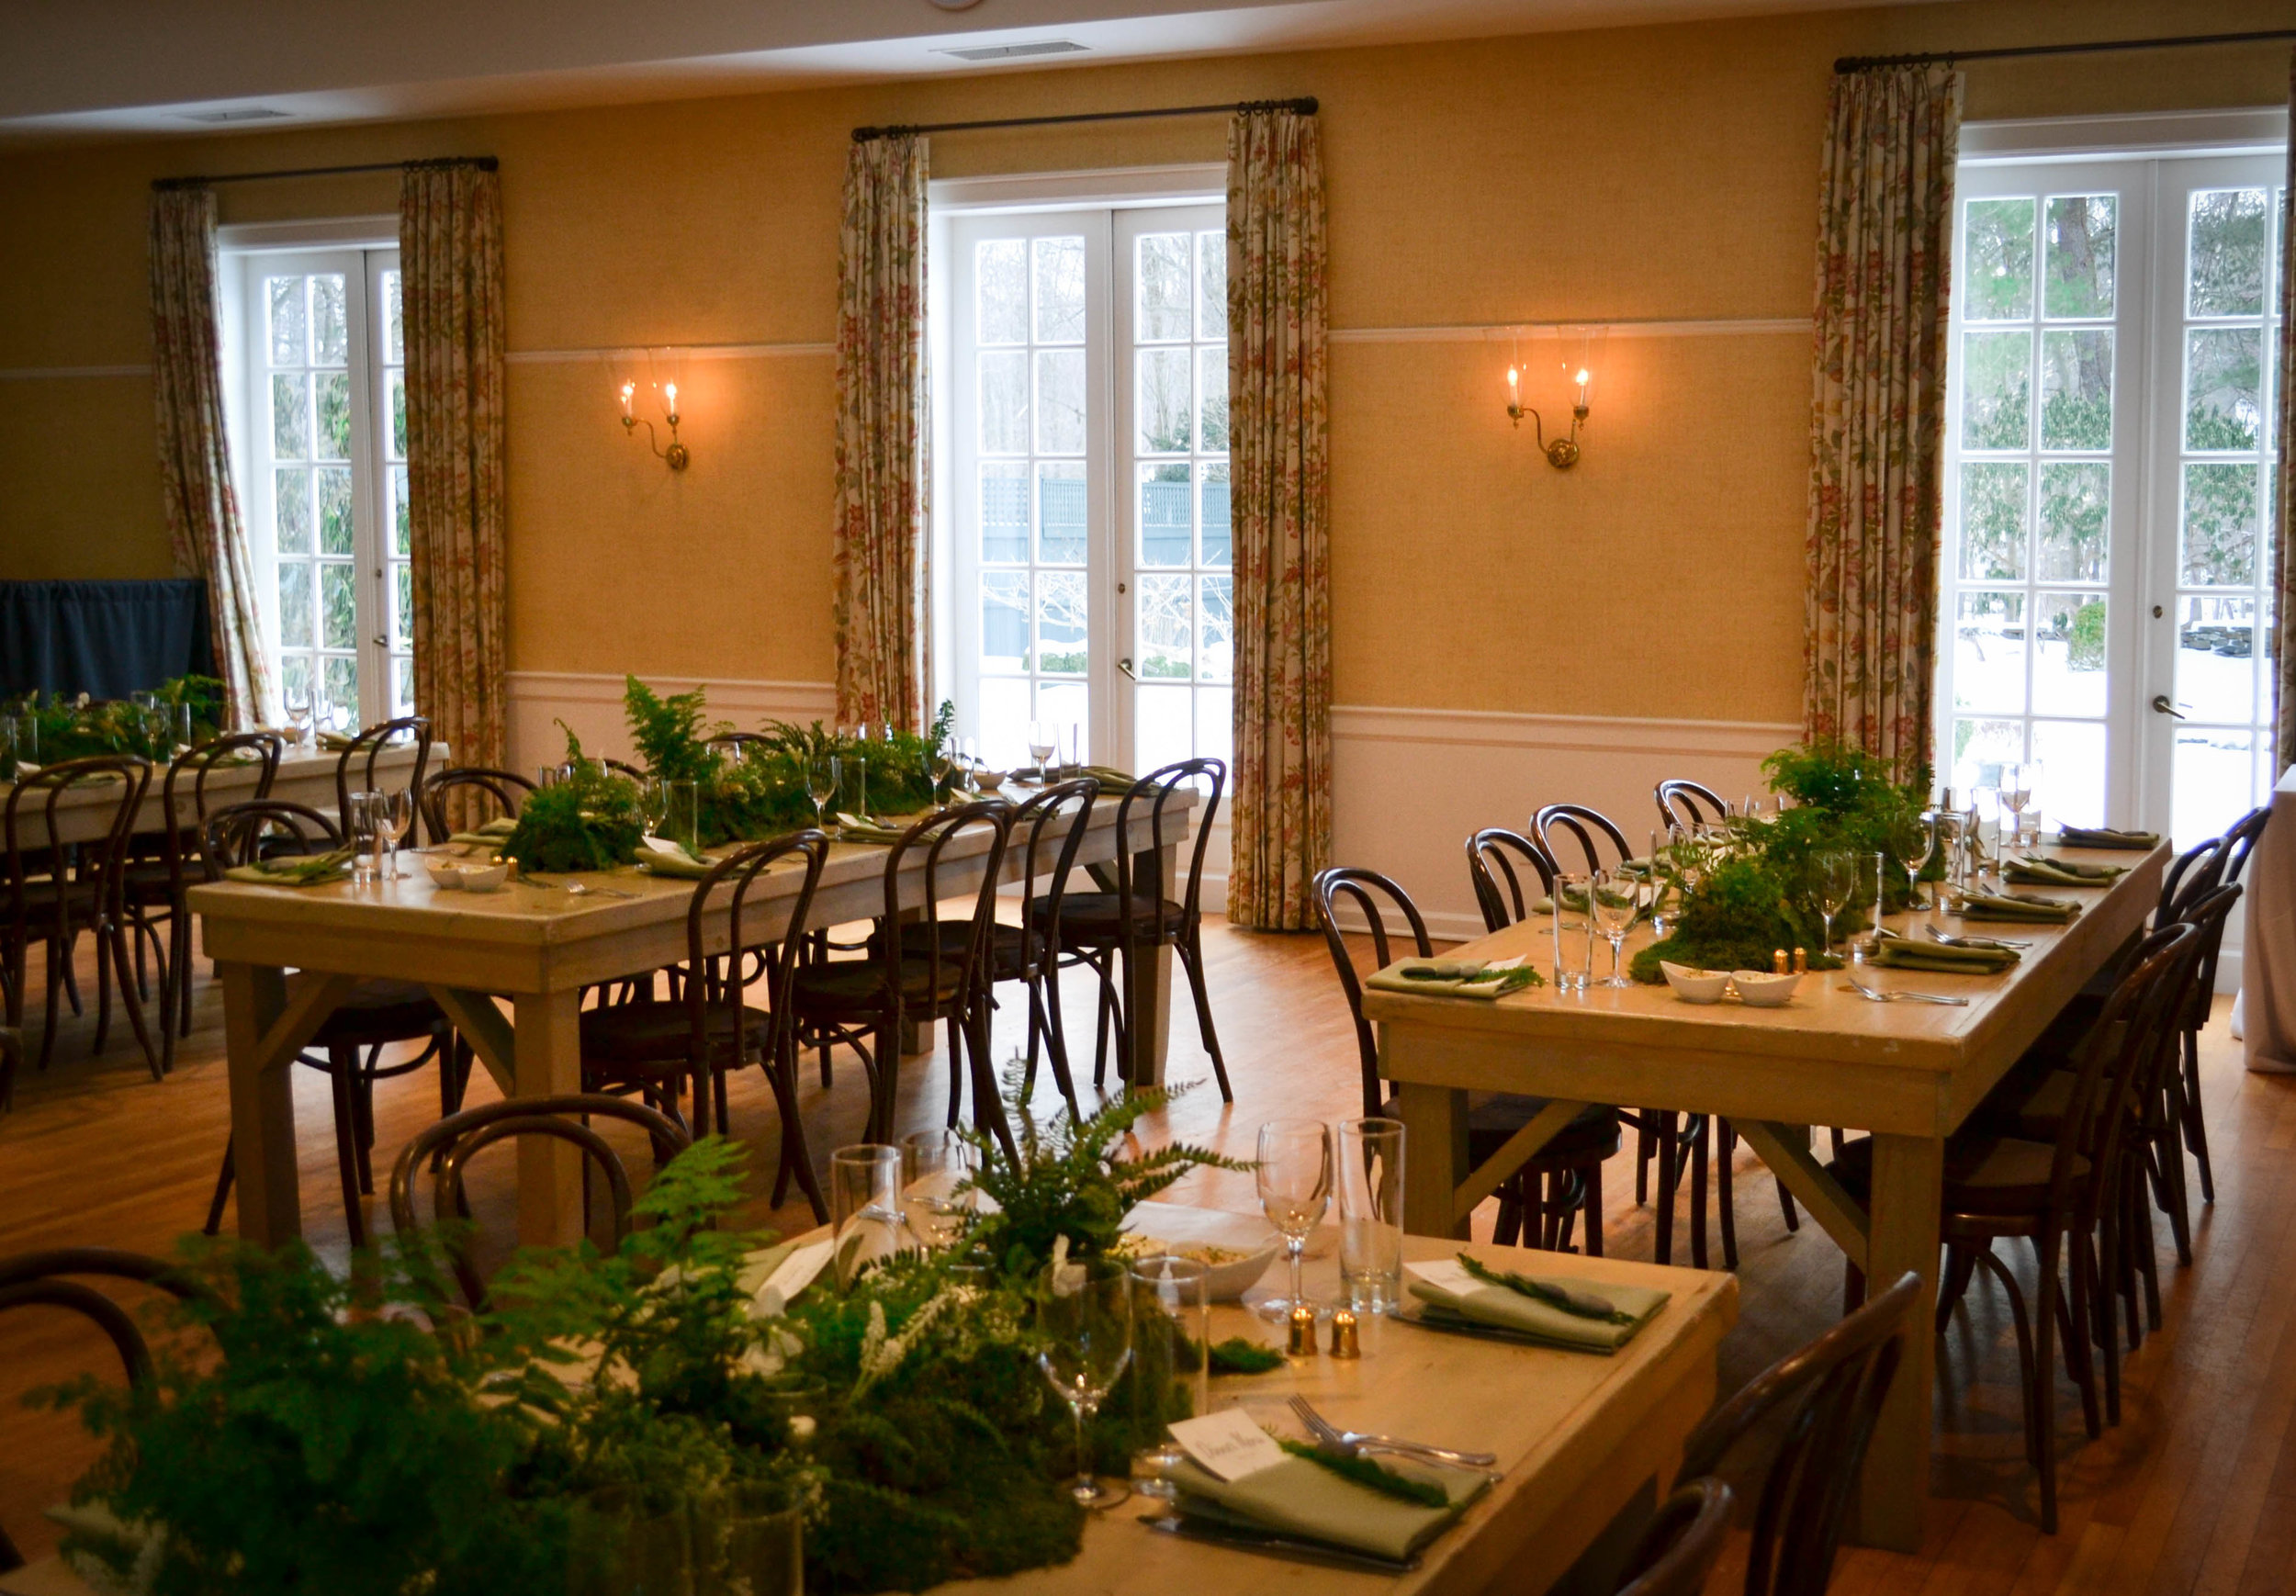 8' farm tables gave the event a communal, intimate feel.